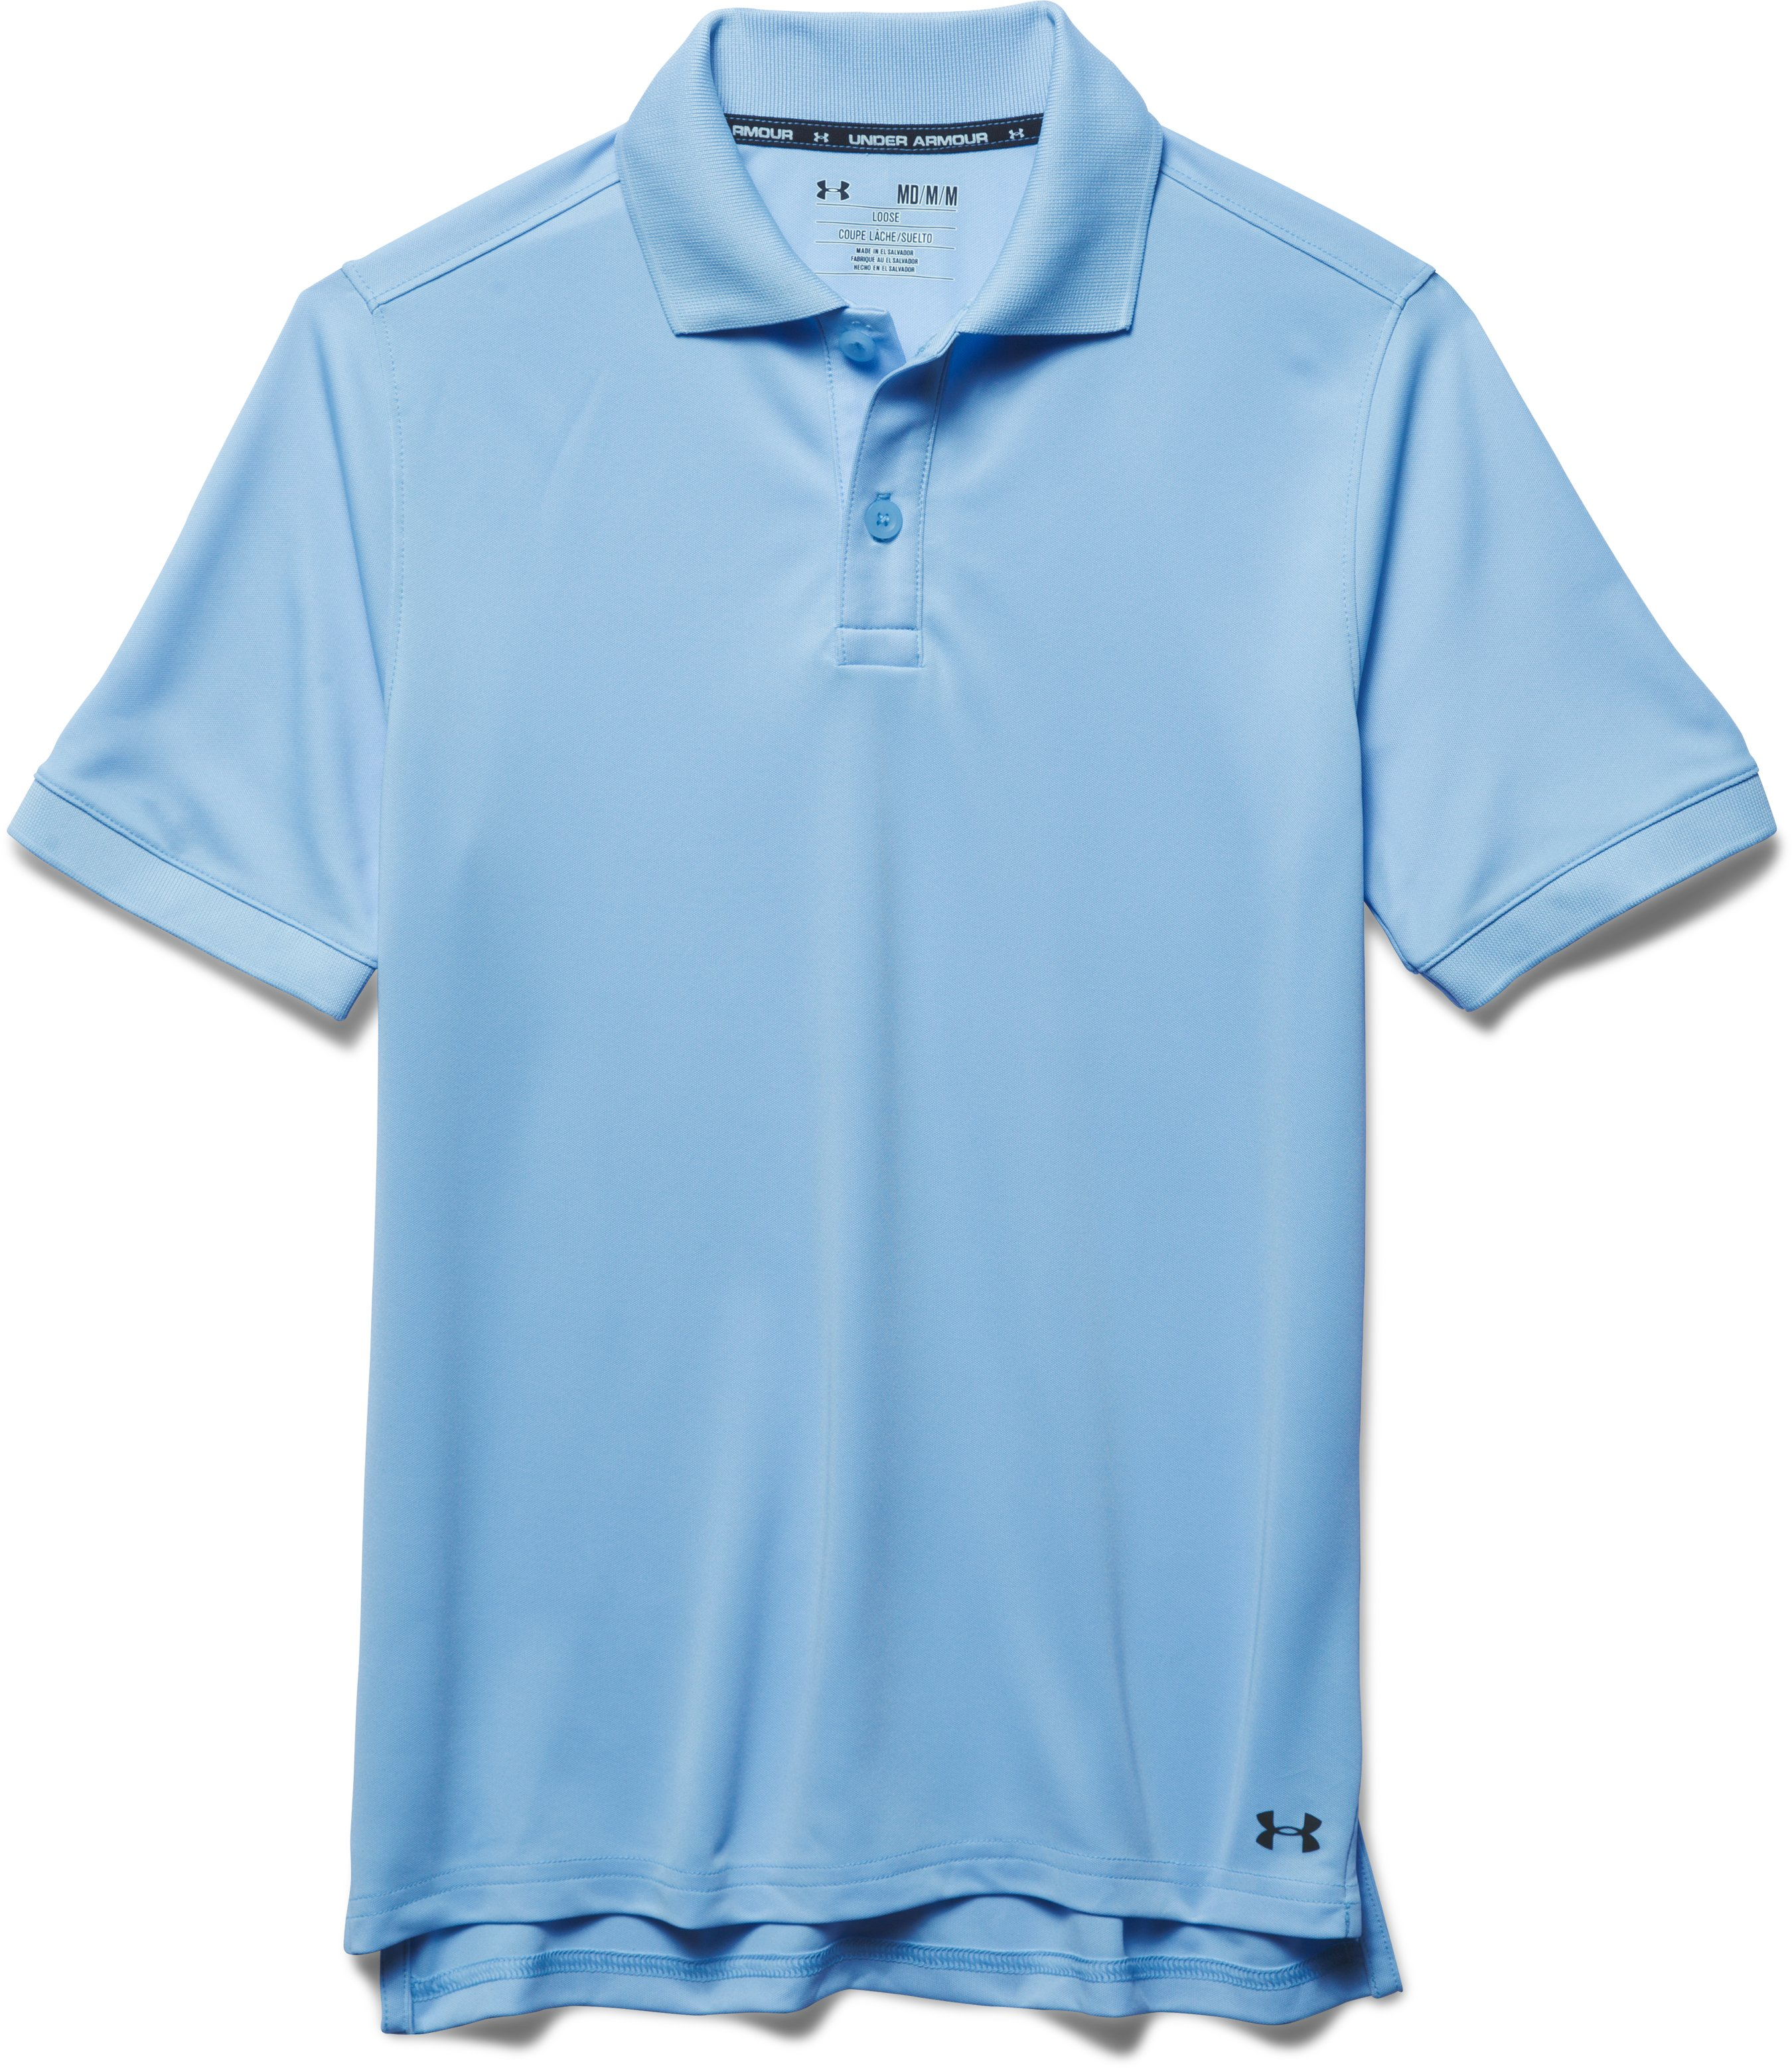 UA Uniform Short Sleeve Polo – Pre-School, Jetstream, Laydown